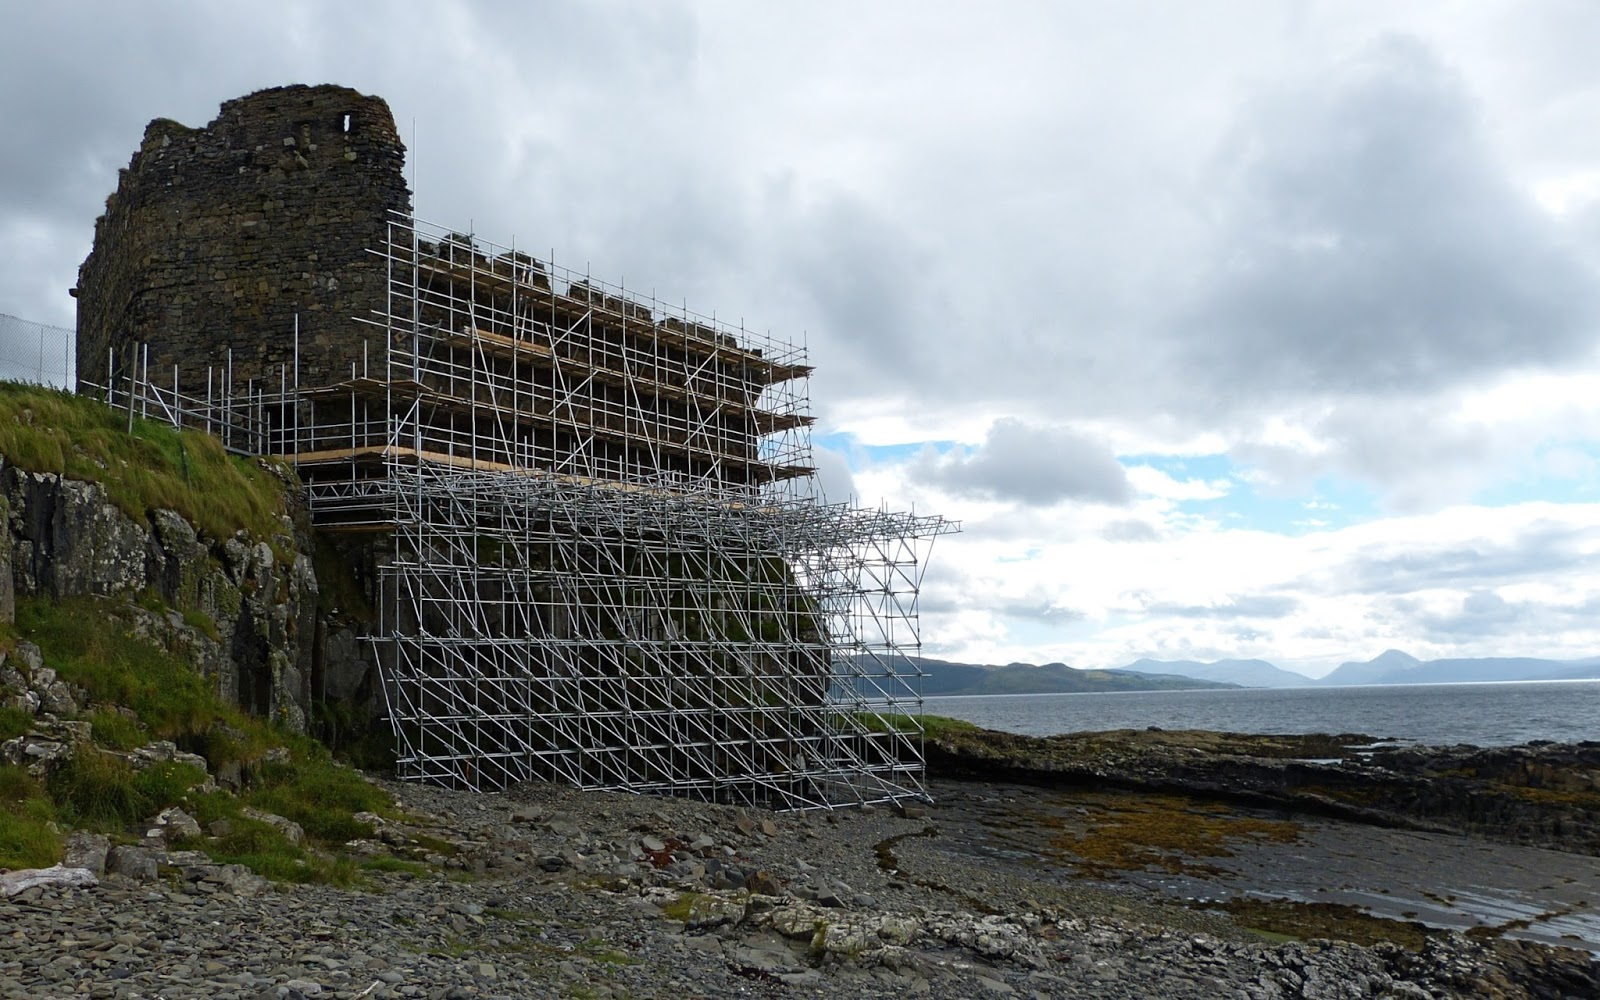 mingary castle the biggest scaffolding job in scotland i was down at the site this morning mostly to admire the scaffolding it s an incredible job rising like some sort of science fiction creeping vine